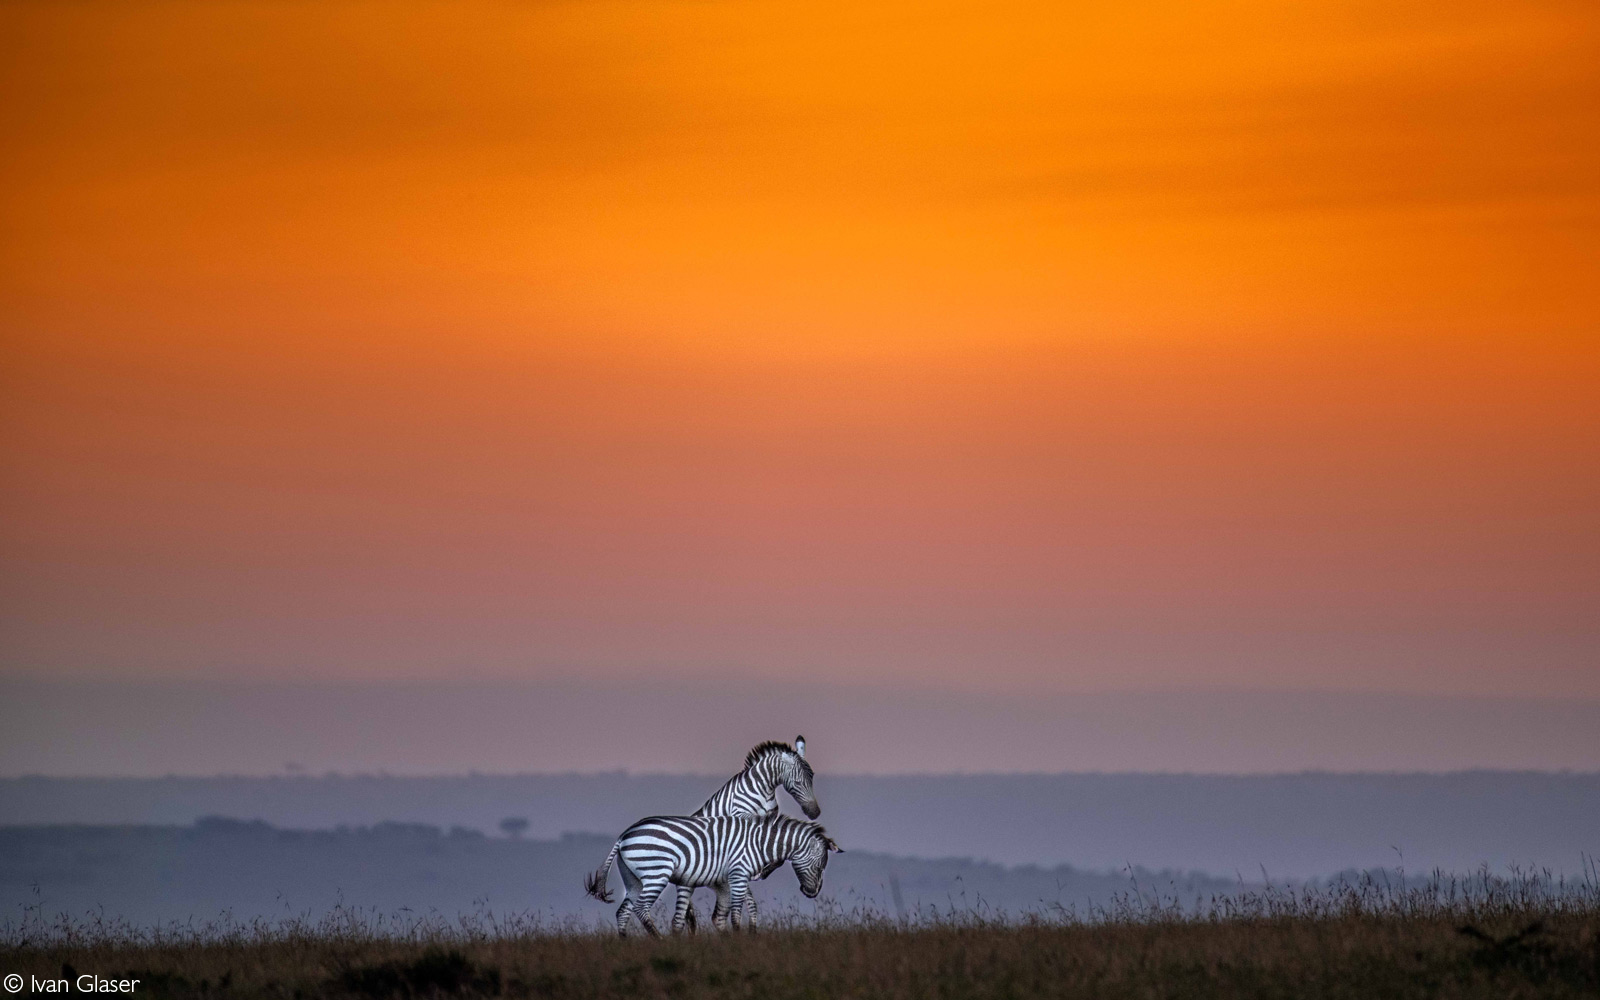 Zebra playing at dawn. Maasai Mara National Reserve, Kenya © Ivan Glaser